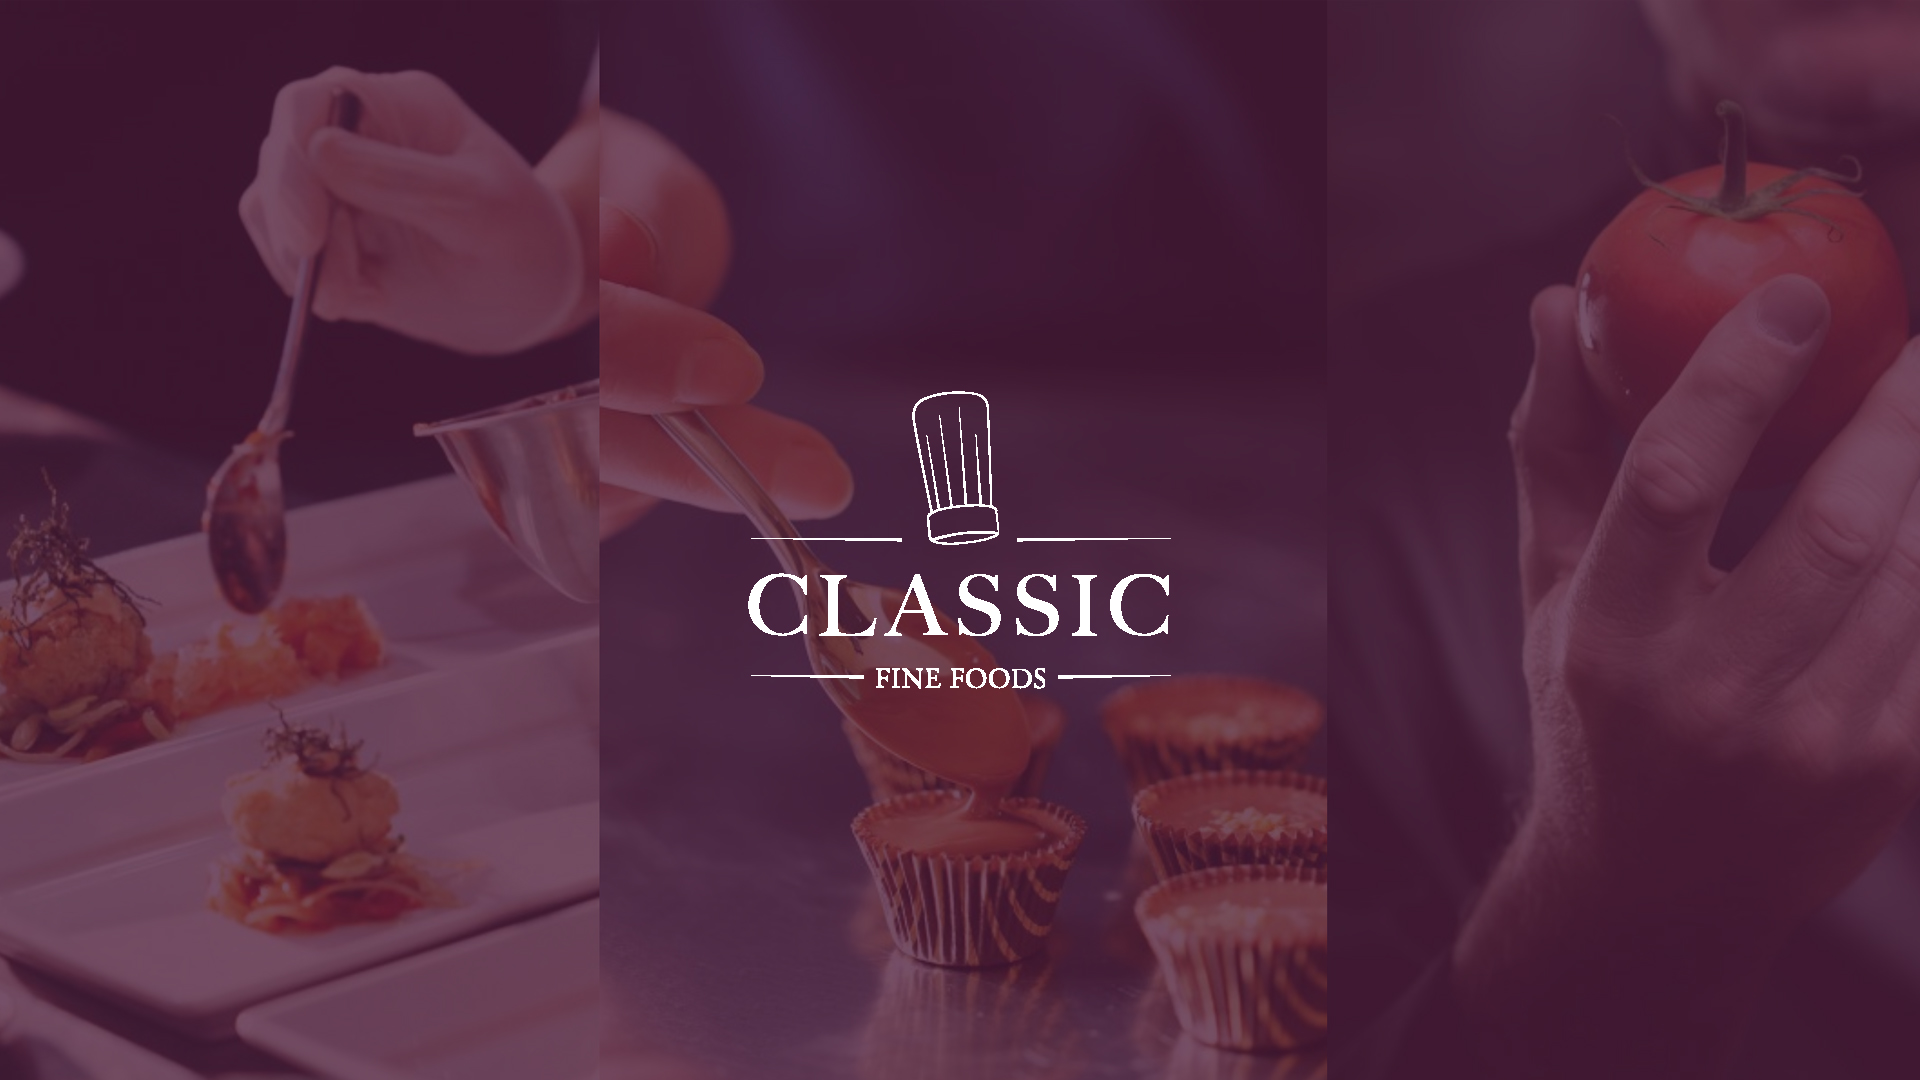 Fine Food Suppliers Restaurants & Hotels | Classic Fine Foods